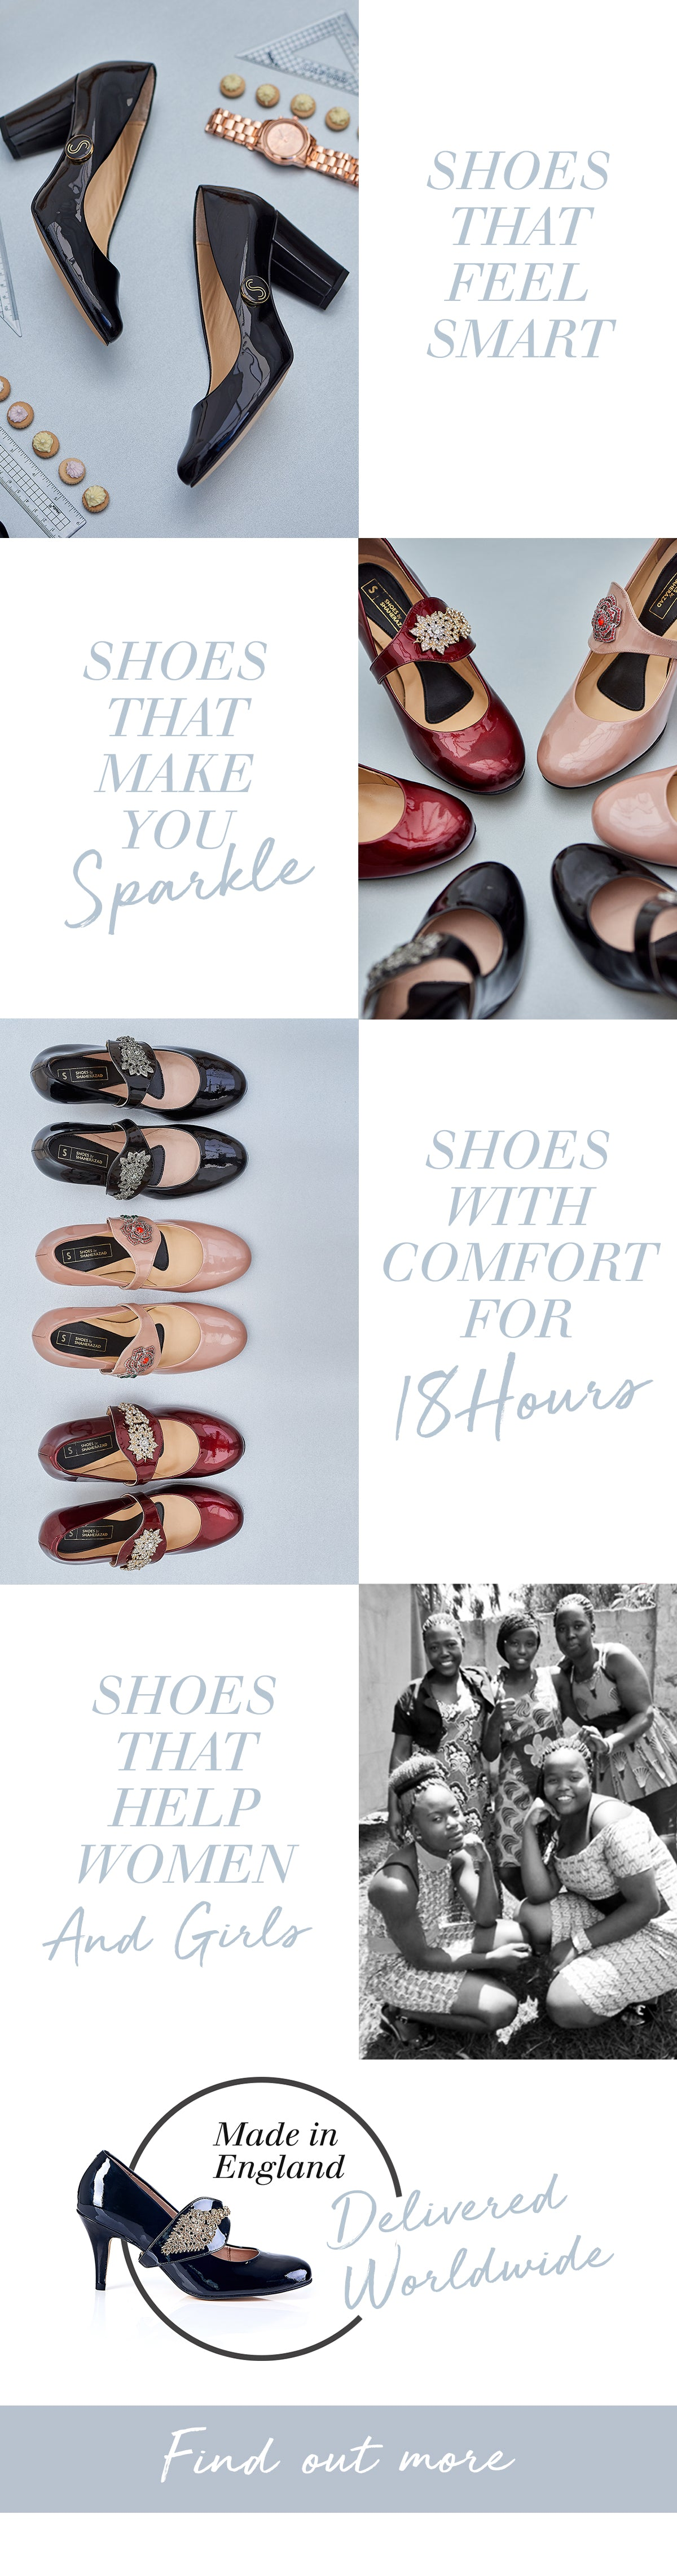 Shoes with comfort and style